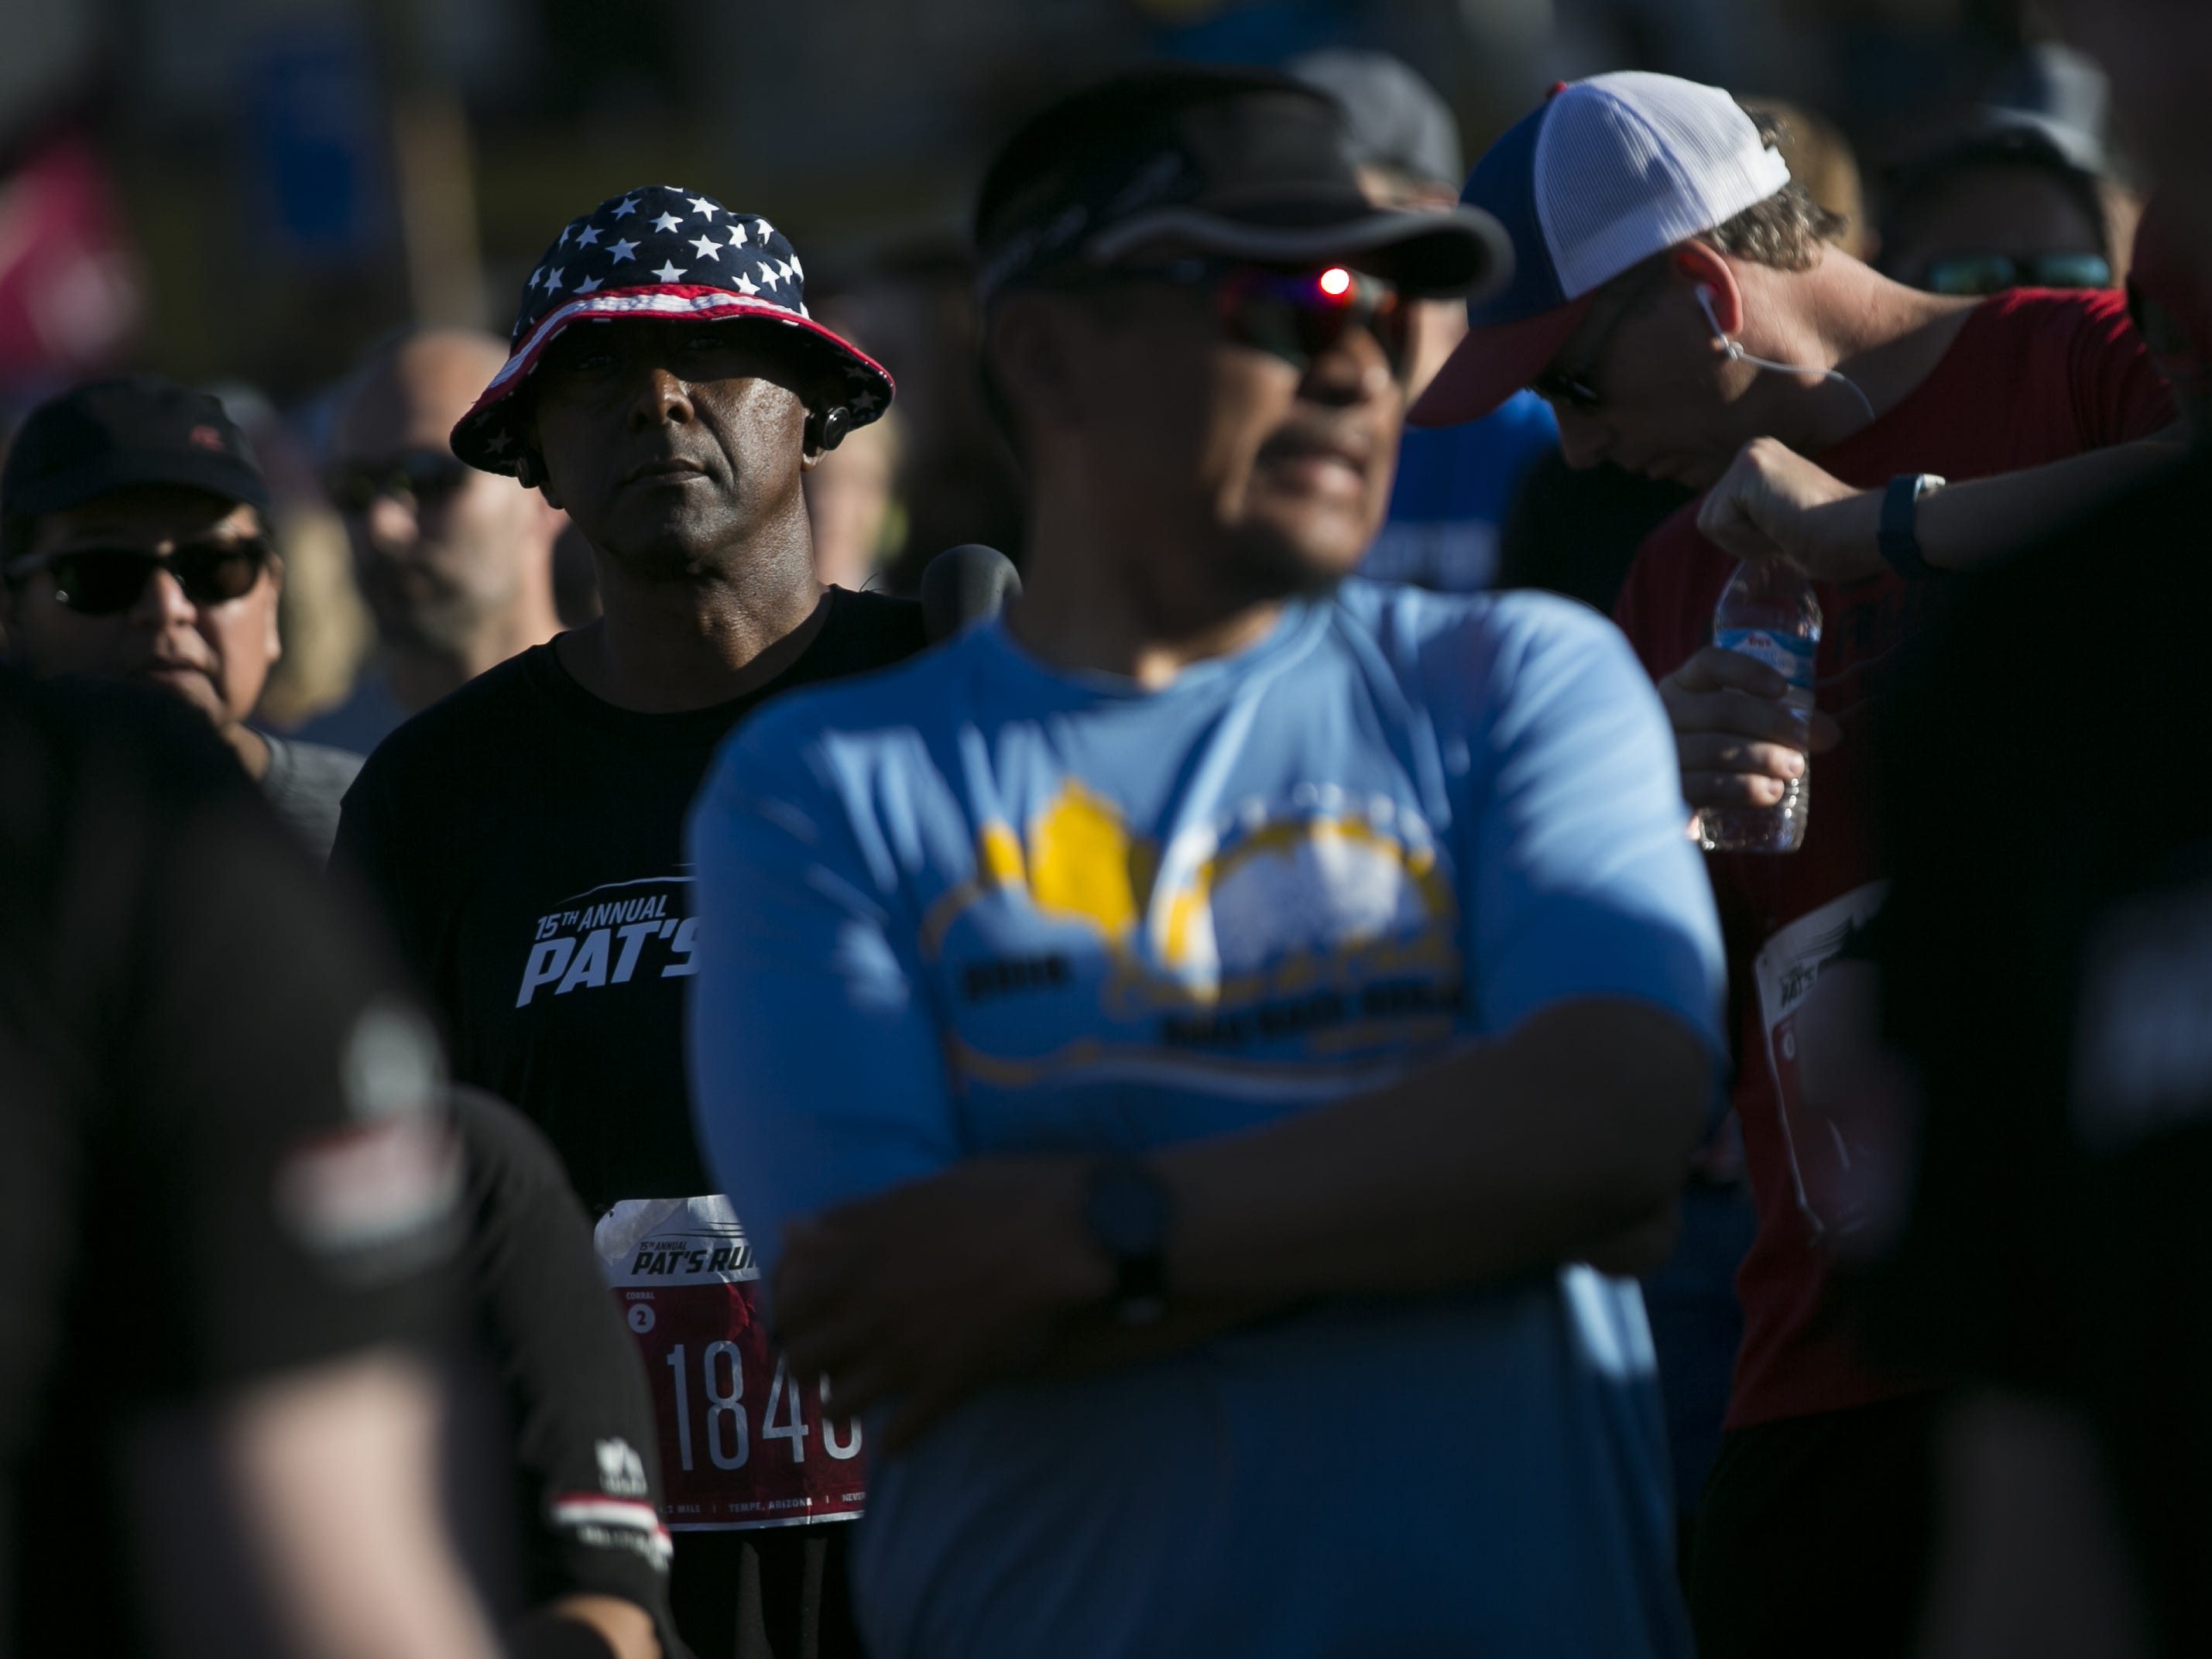 Runners wait to participate in Pat's Run 2019 in Tempe on April 27, 2019.